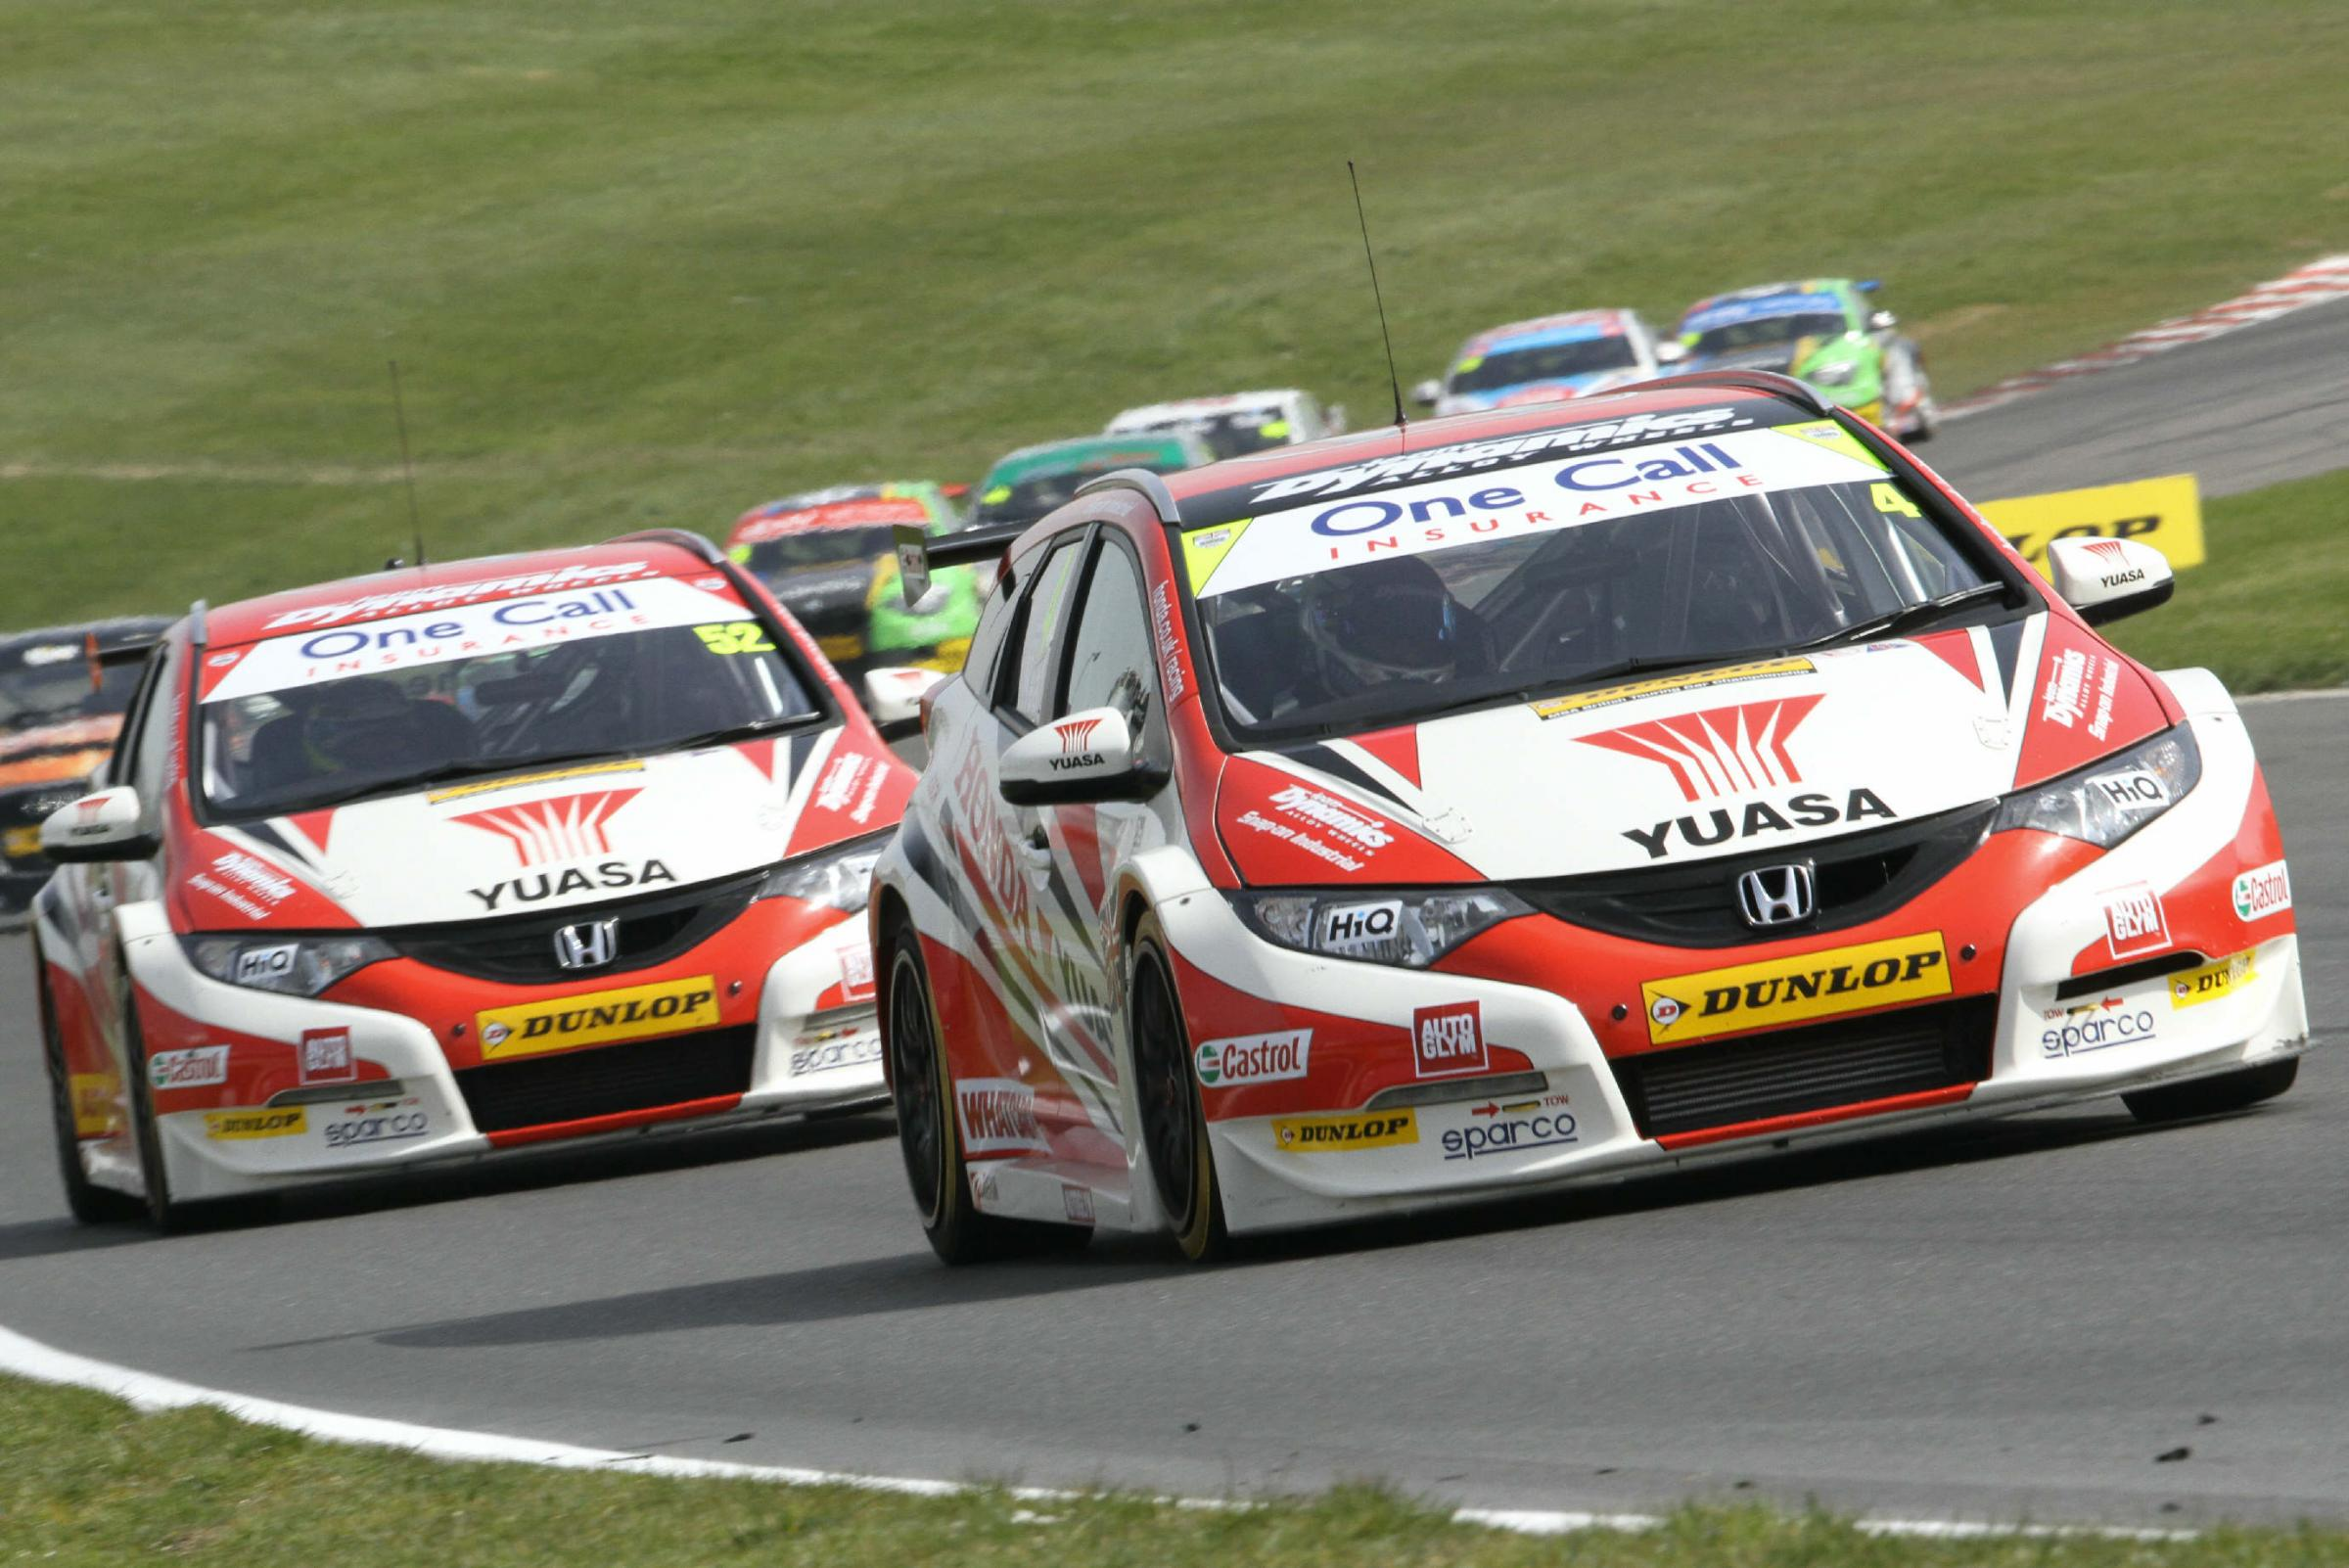 Matt Neal in action at Brands Hatch. Picture: DARREN PRICE